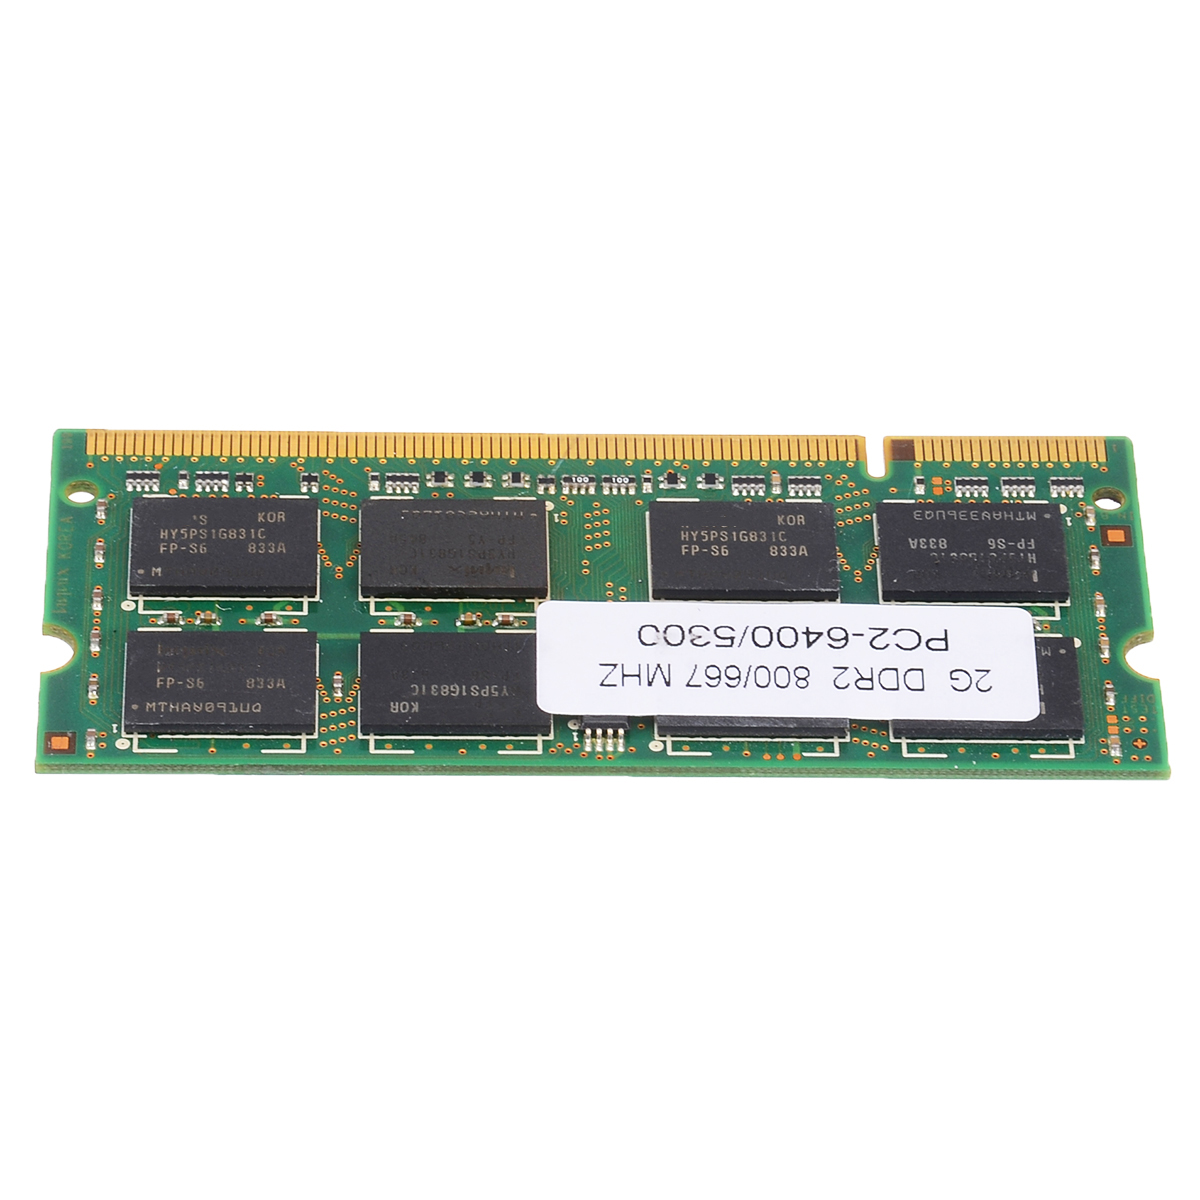 Laptop Memory DDR2 With 2GB PC2 6400/5300 800/667MHZ Low-Density 1